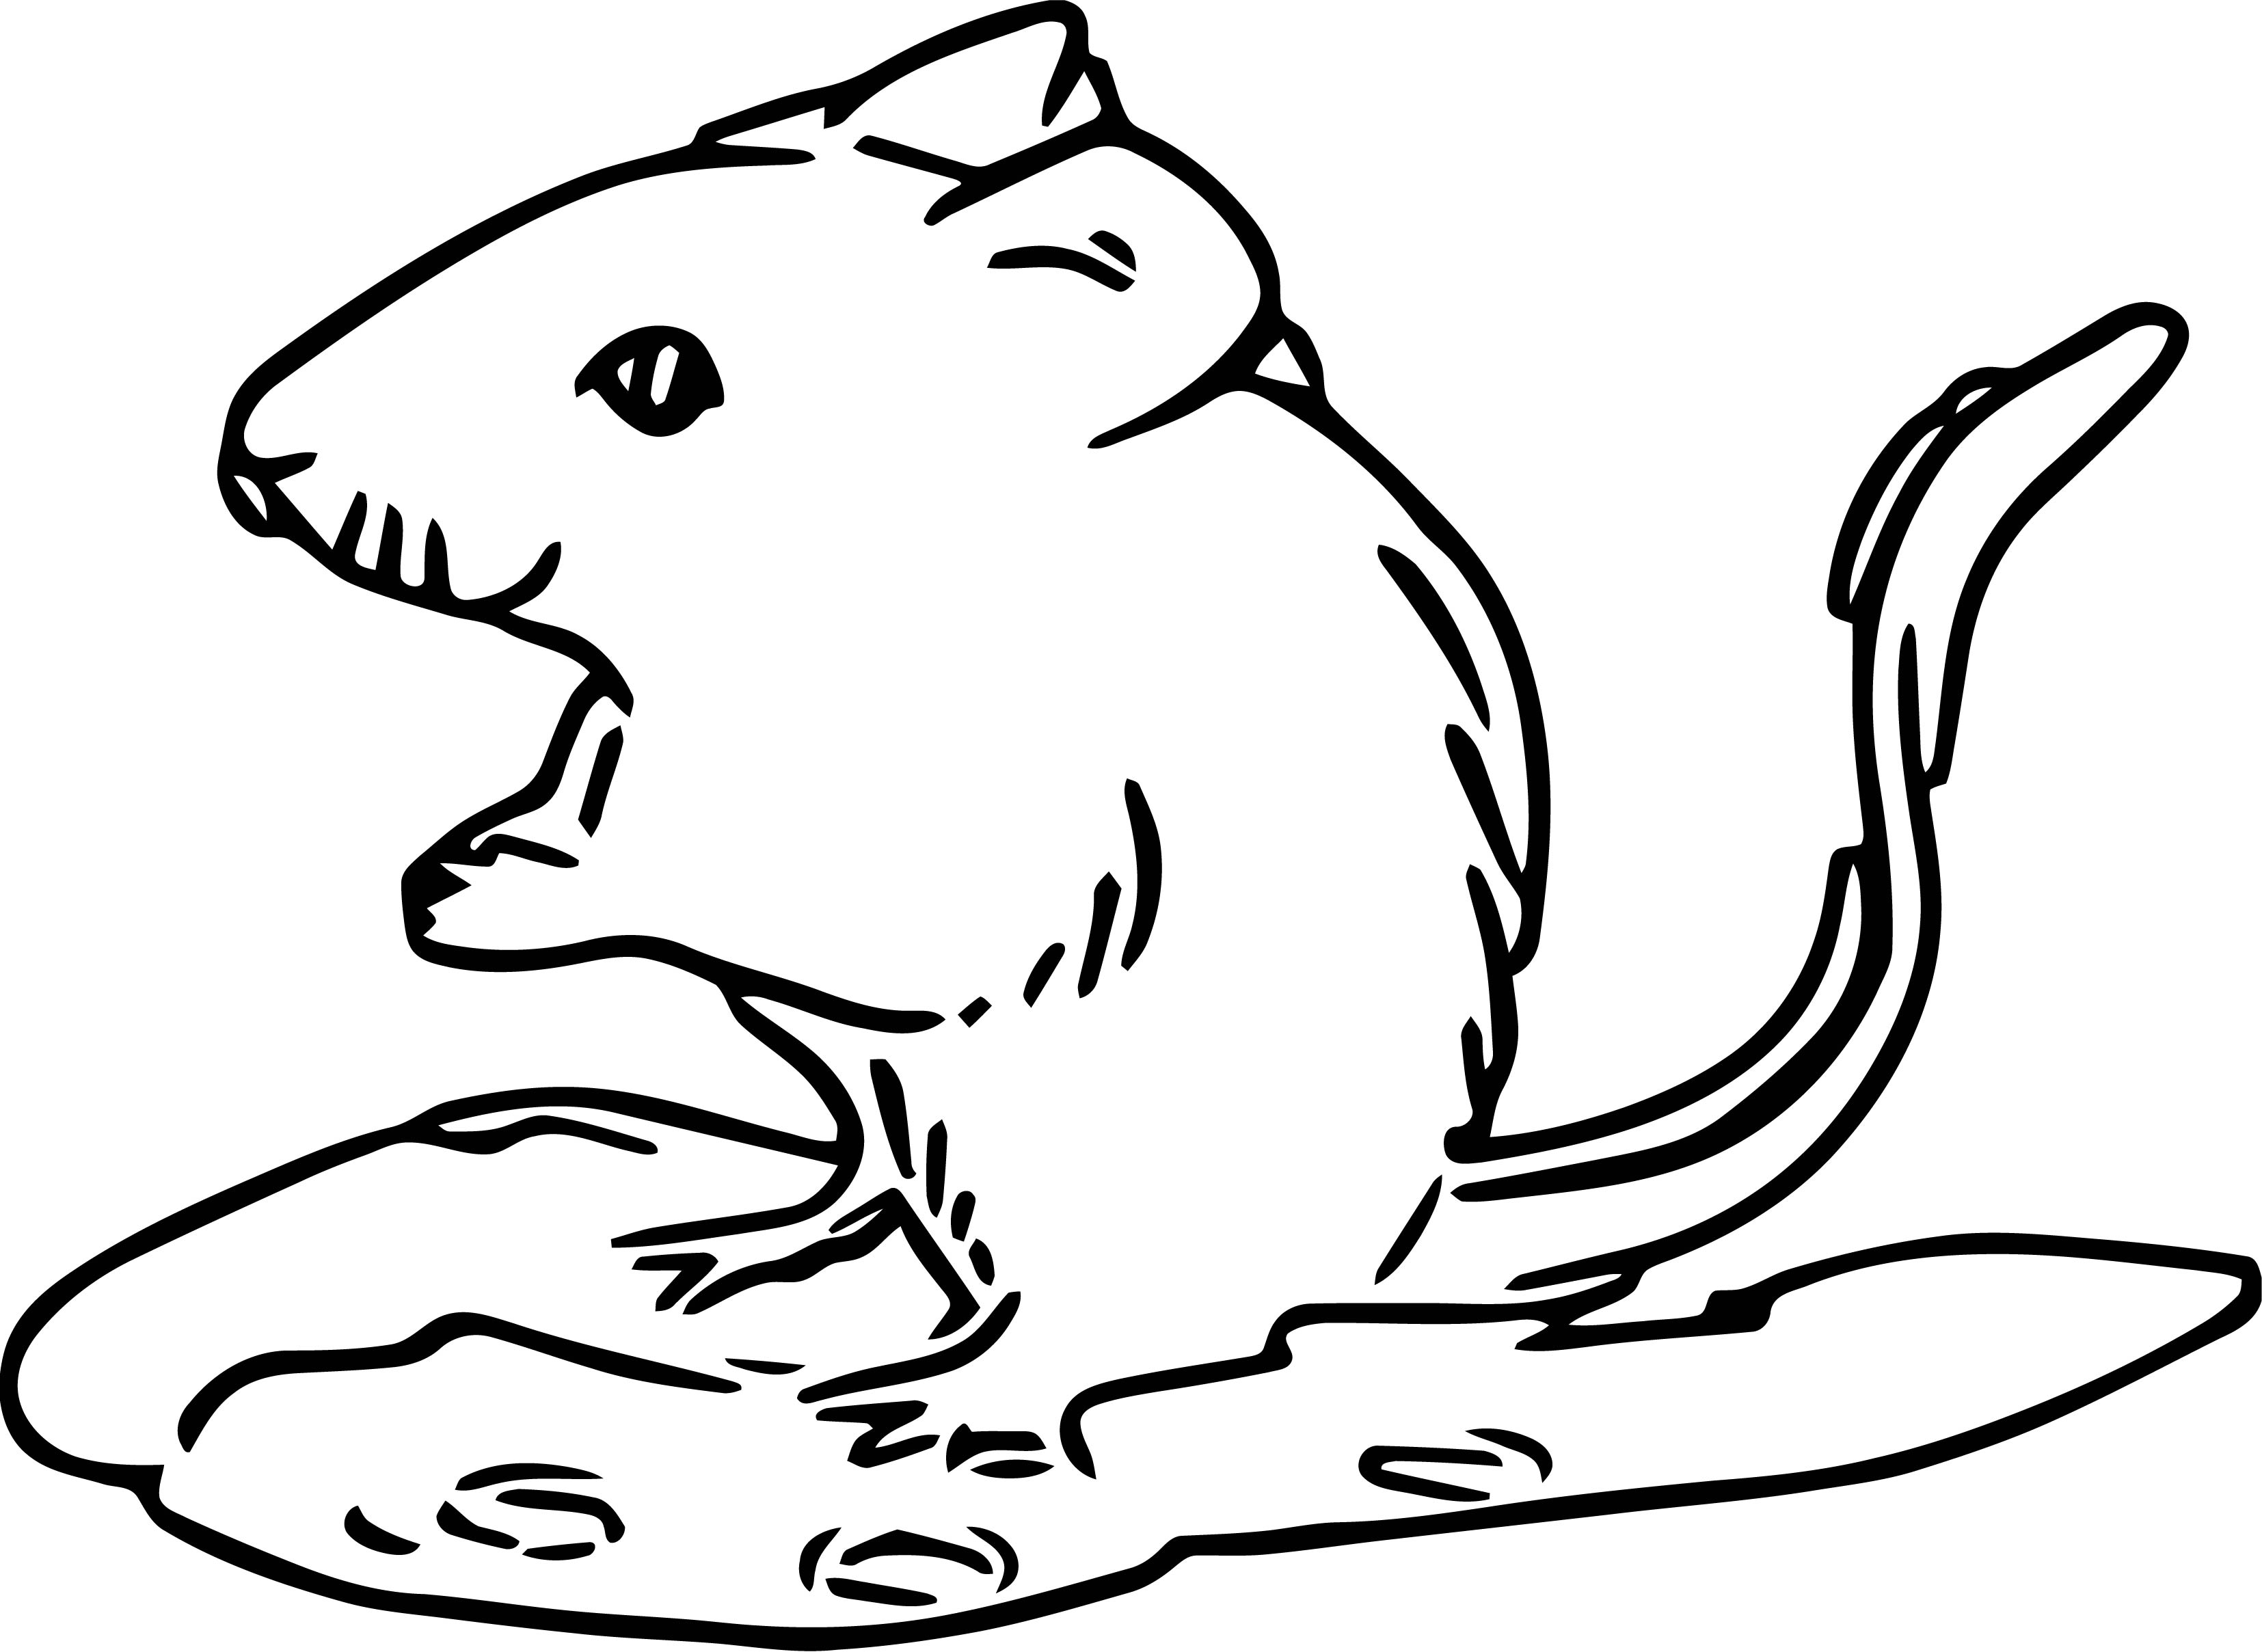 Mouse Jpeg Coloring Page 03